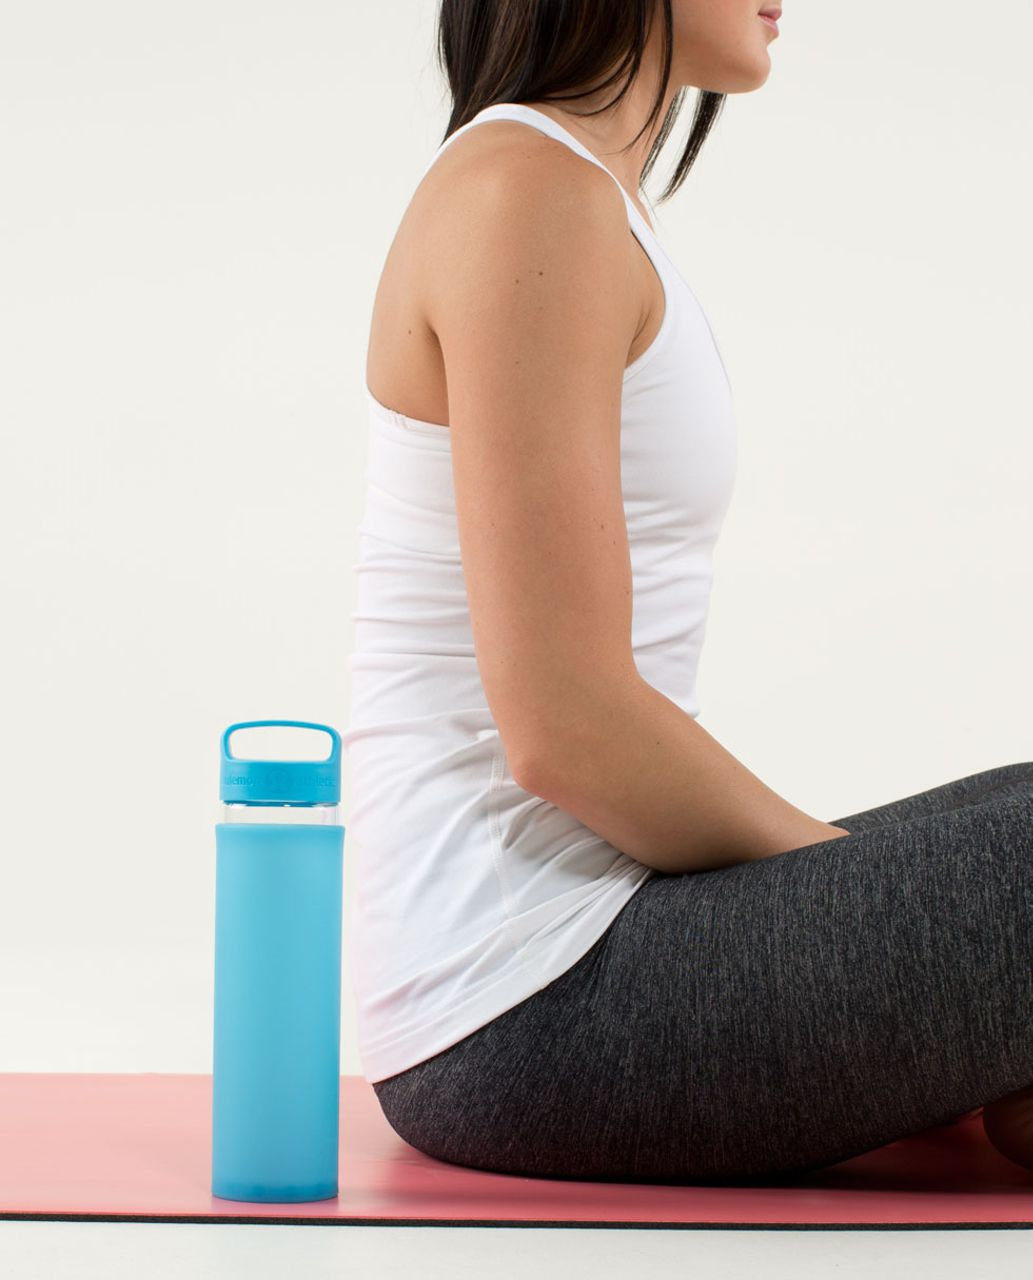 Lululemon Pure Balance Water Bottle - Spry Blue